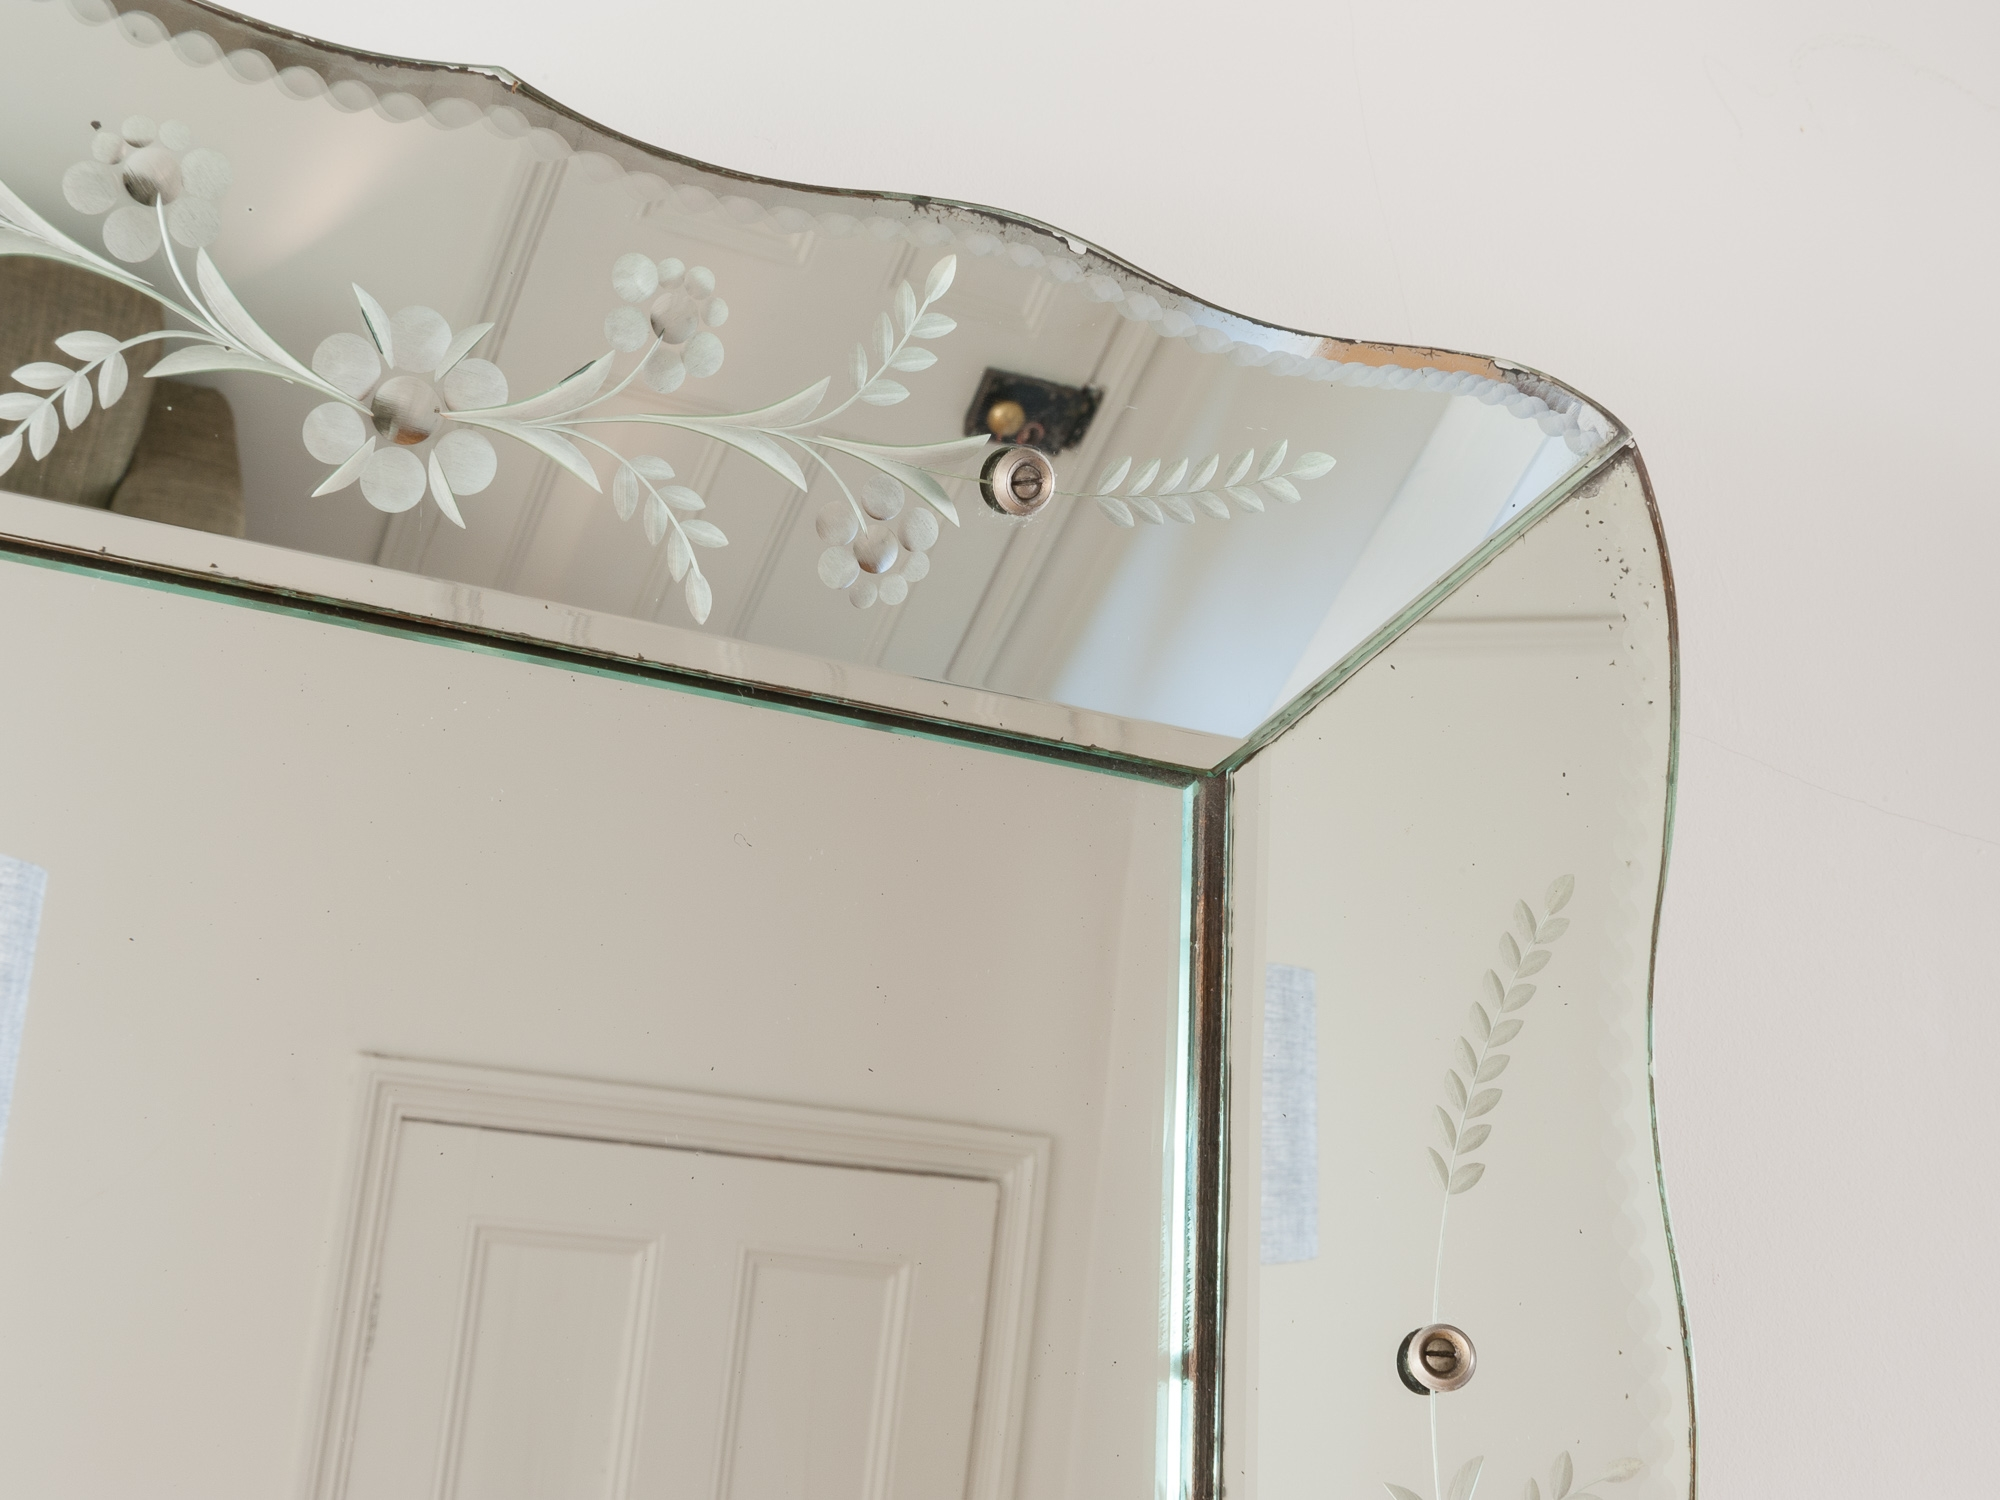 Vintage French Bevelled Edge Mirror Retro Living London Uk Pertaining To Vintage Bevelled Edge Mirror (Image 12 of 15)